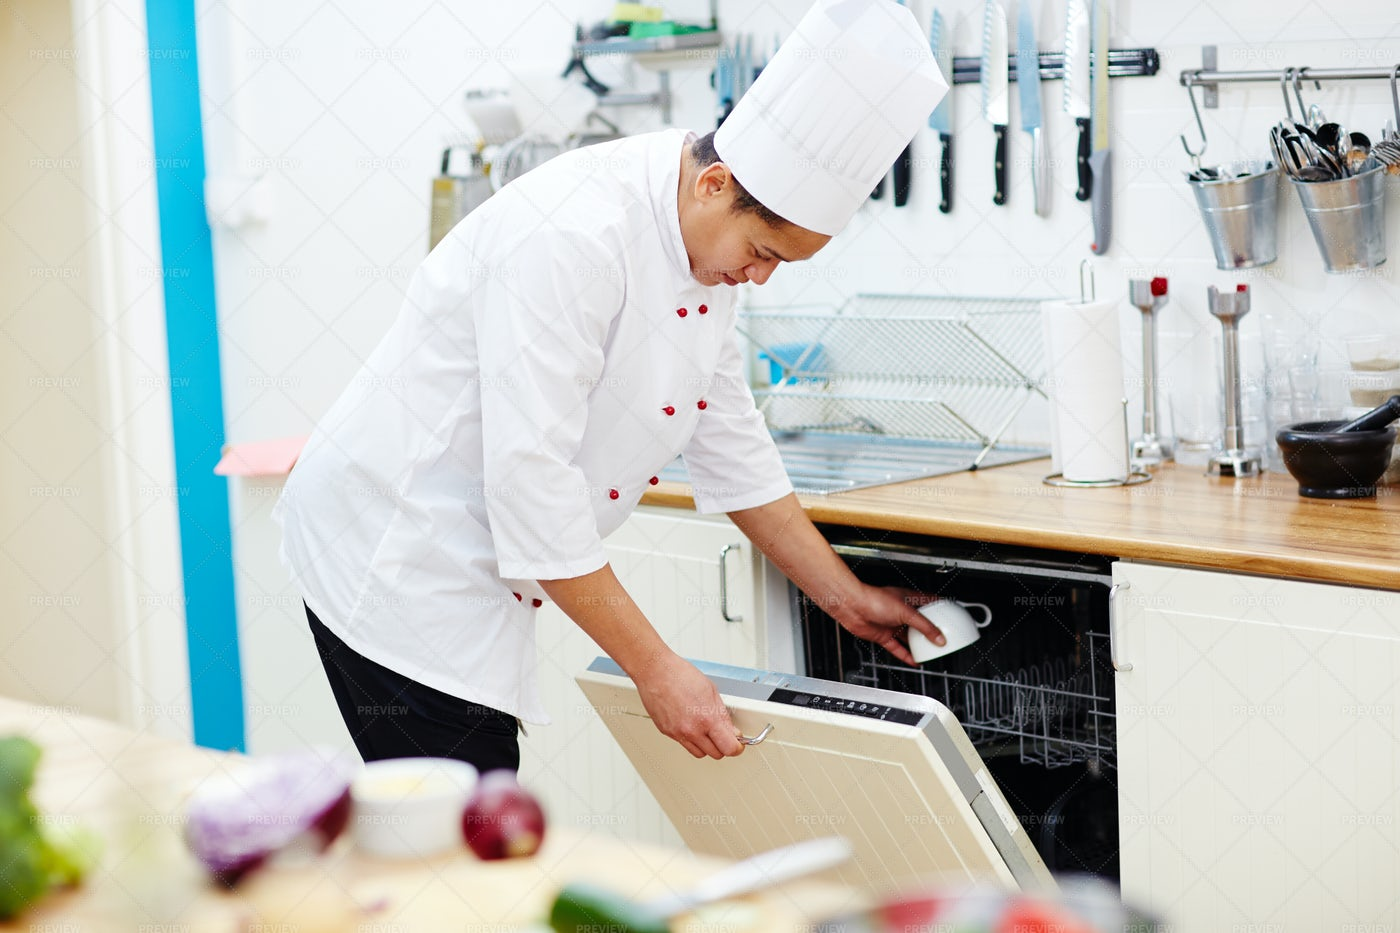 Chef Working In The Kitchen: Stock Photos